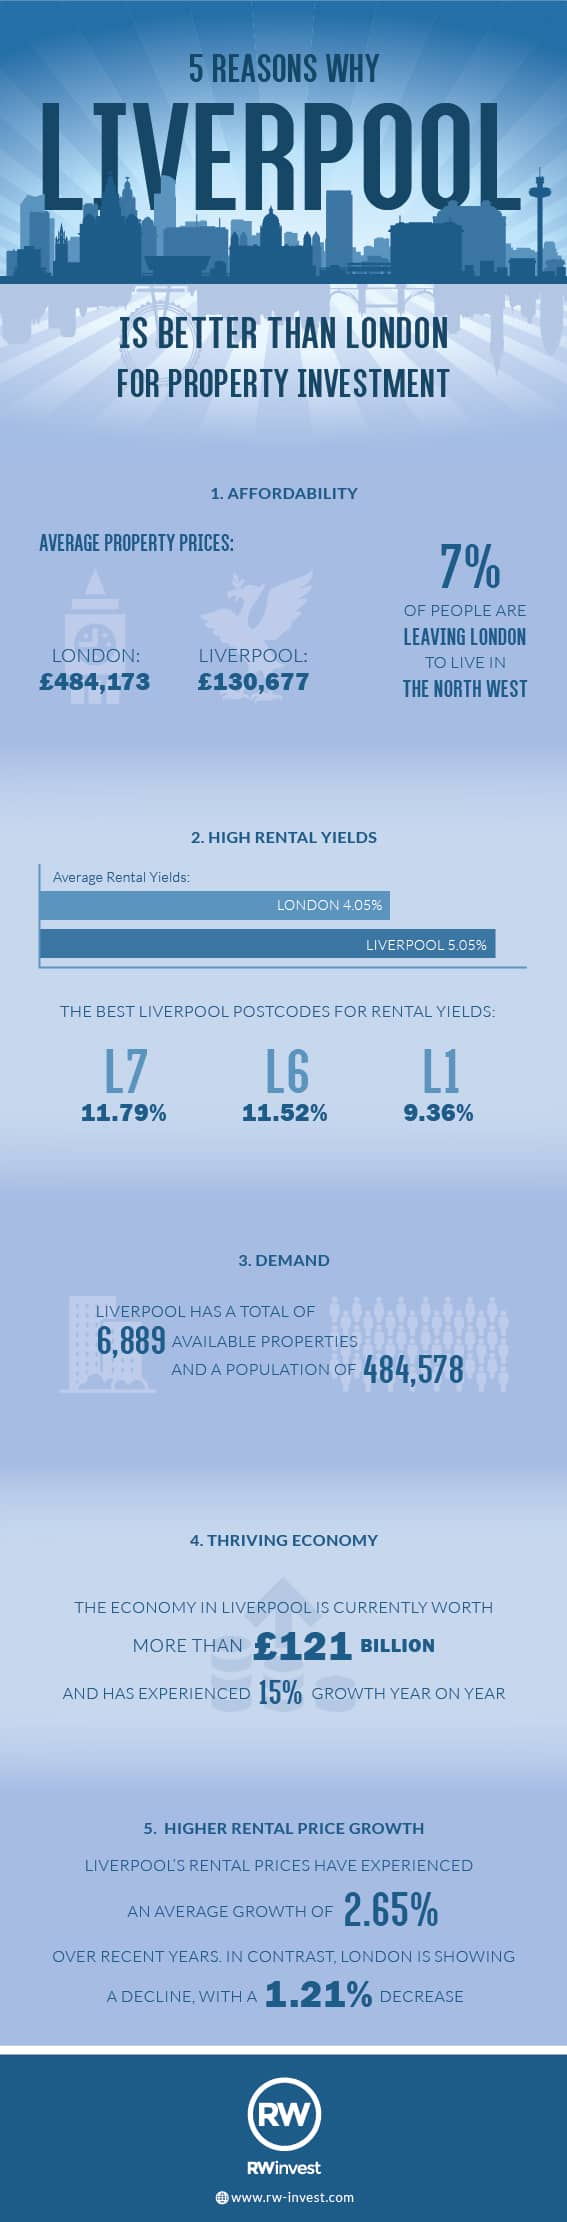 Liverpool is Better than London Infographic